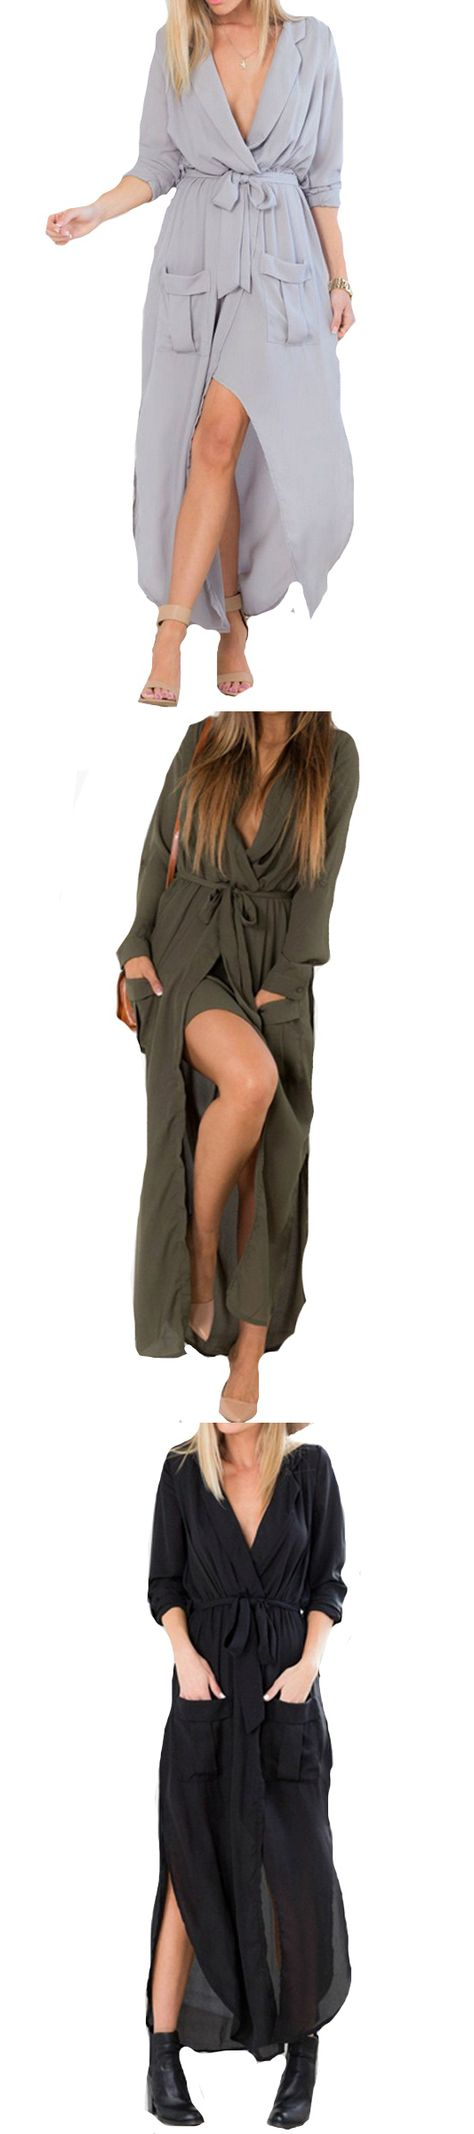 Love to wear long? Try this sexy slit maxi dress and infuse hotness in your style!Get more from Minchic.com